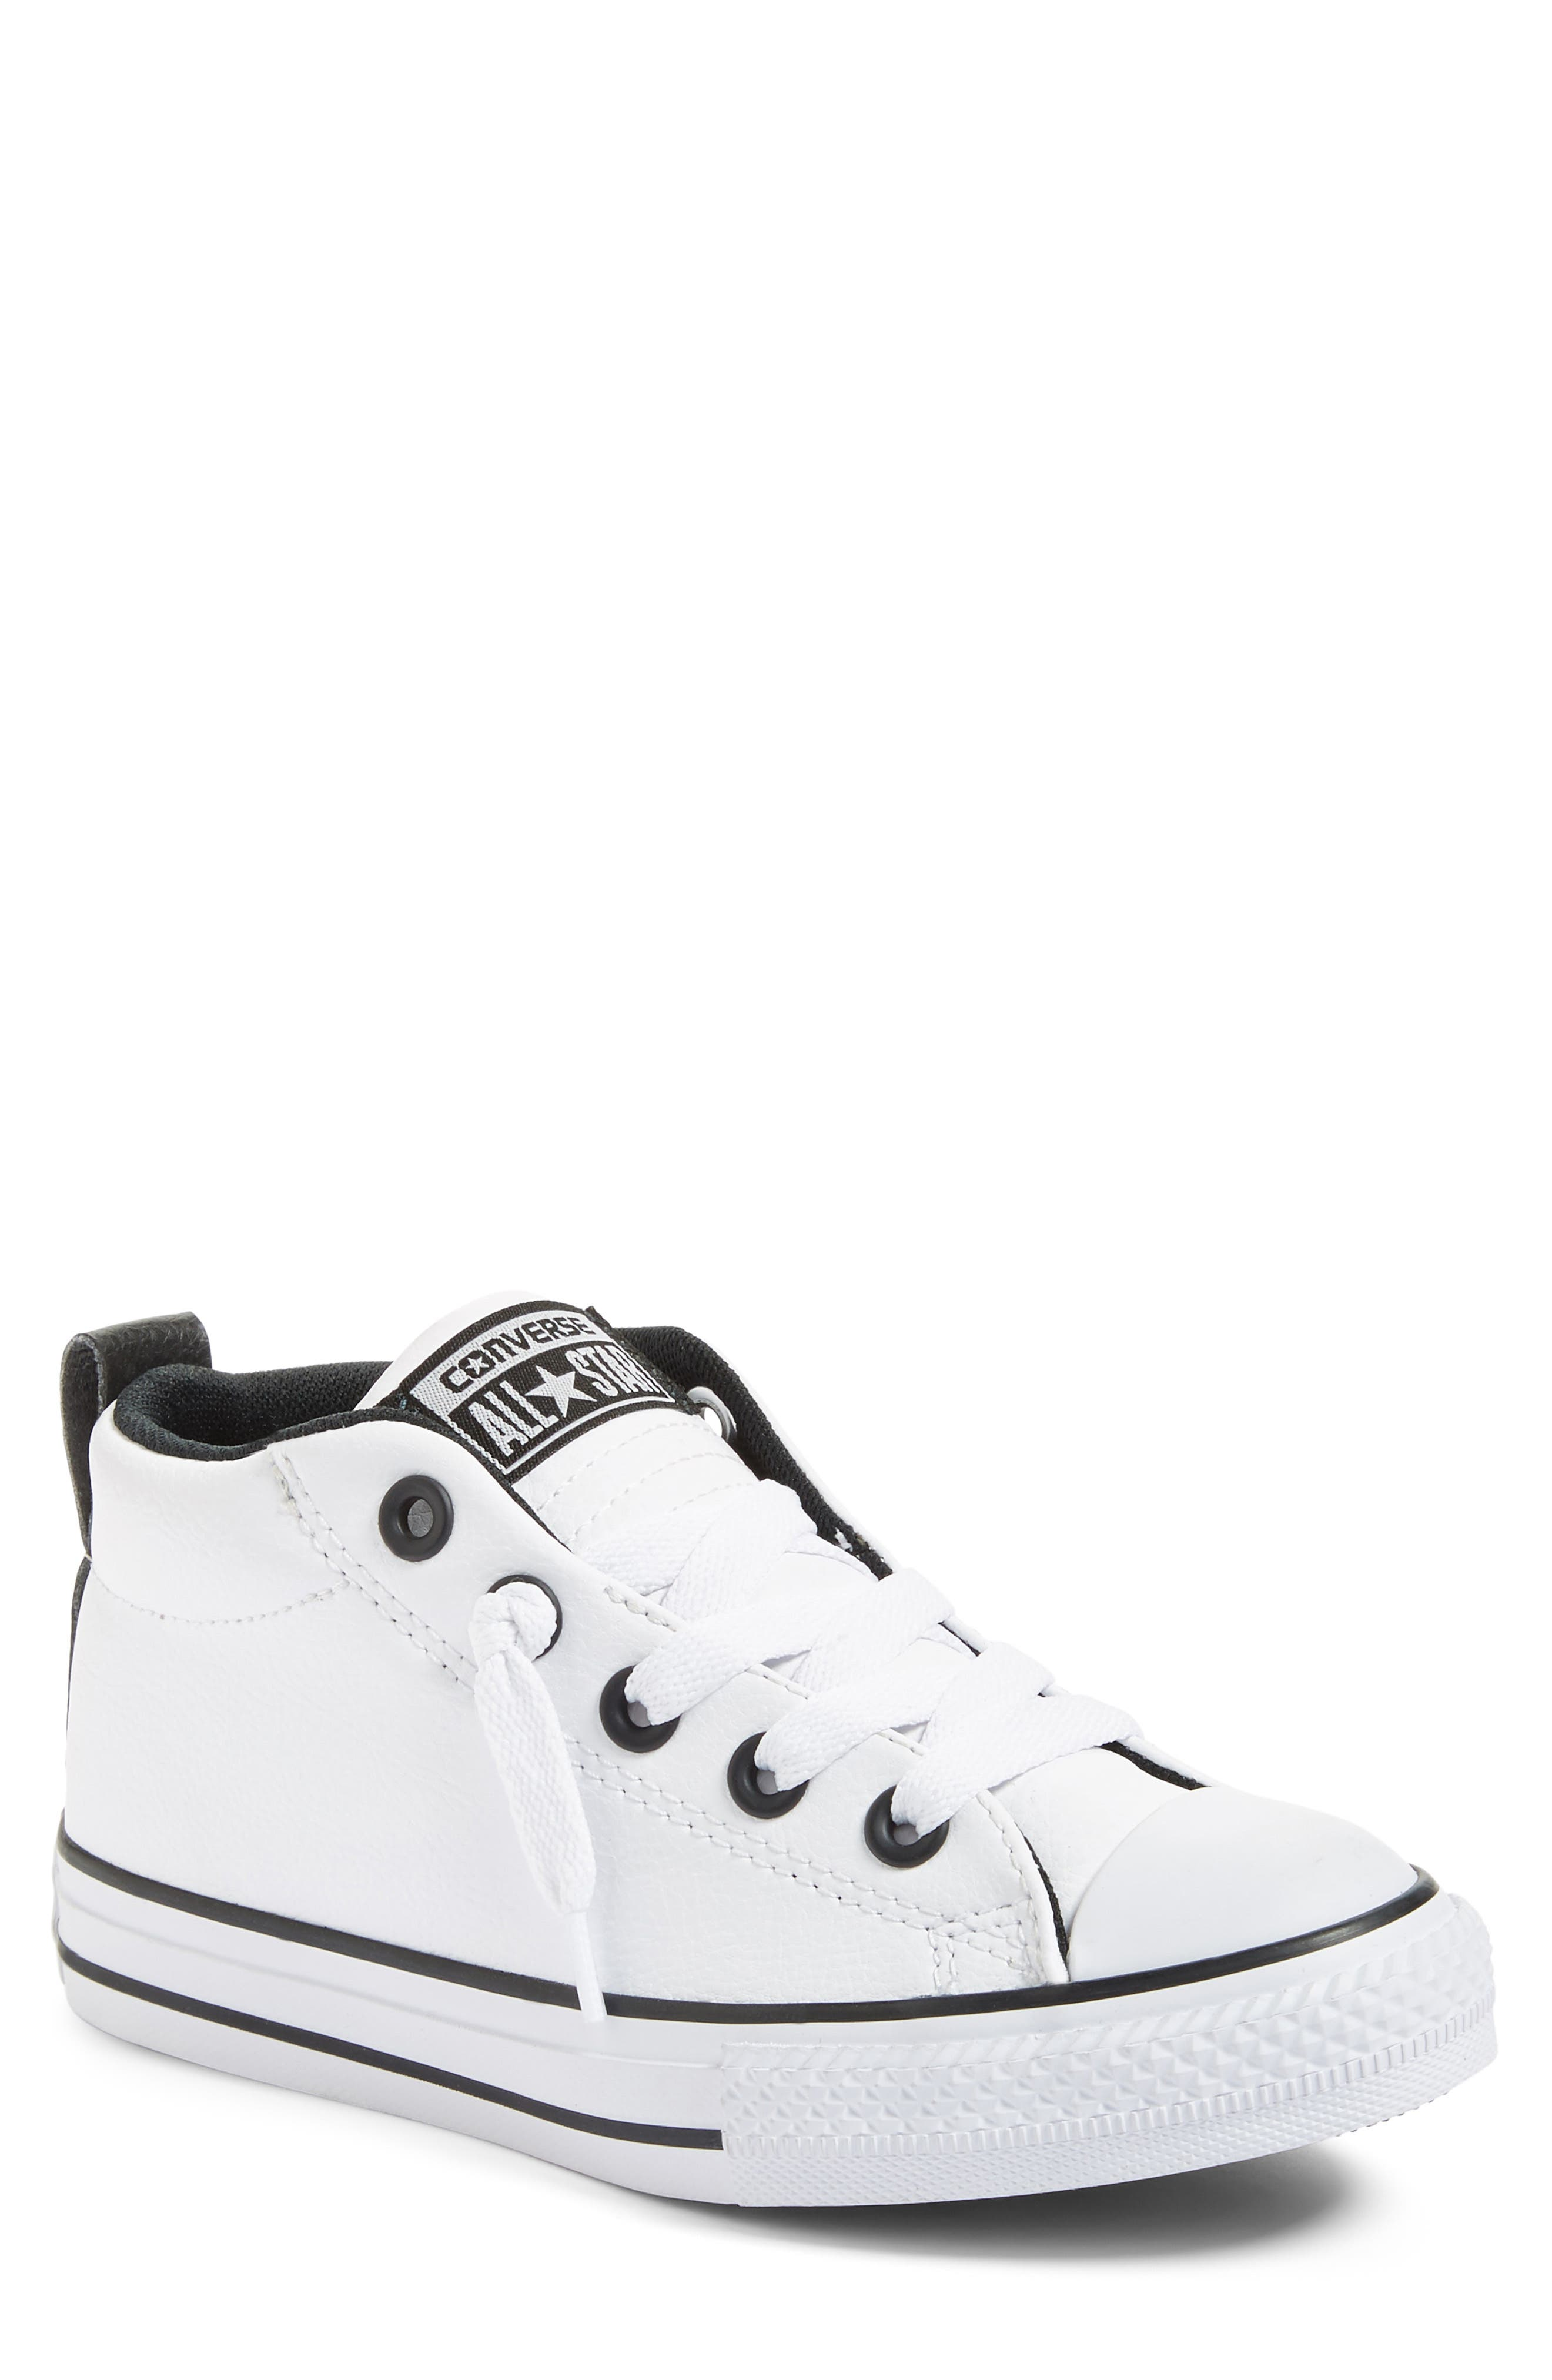 Chuck Taylor<sup>®</sup> All Star<sup>®</sup> Mid High Sneaker,                         Main,                         color, 102